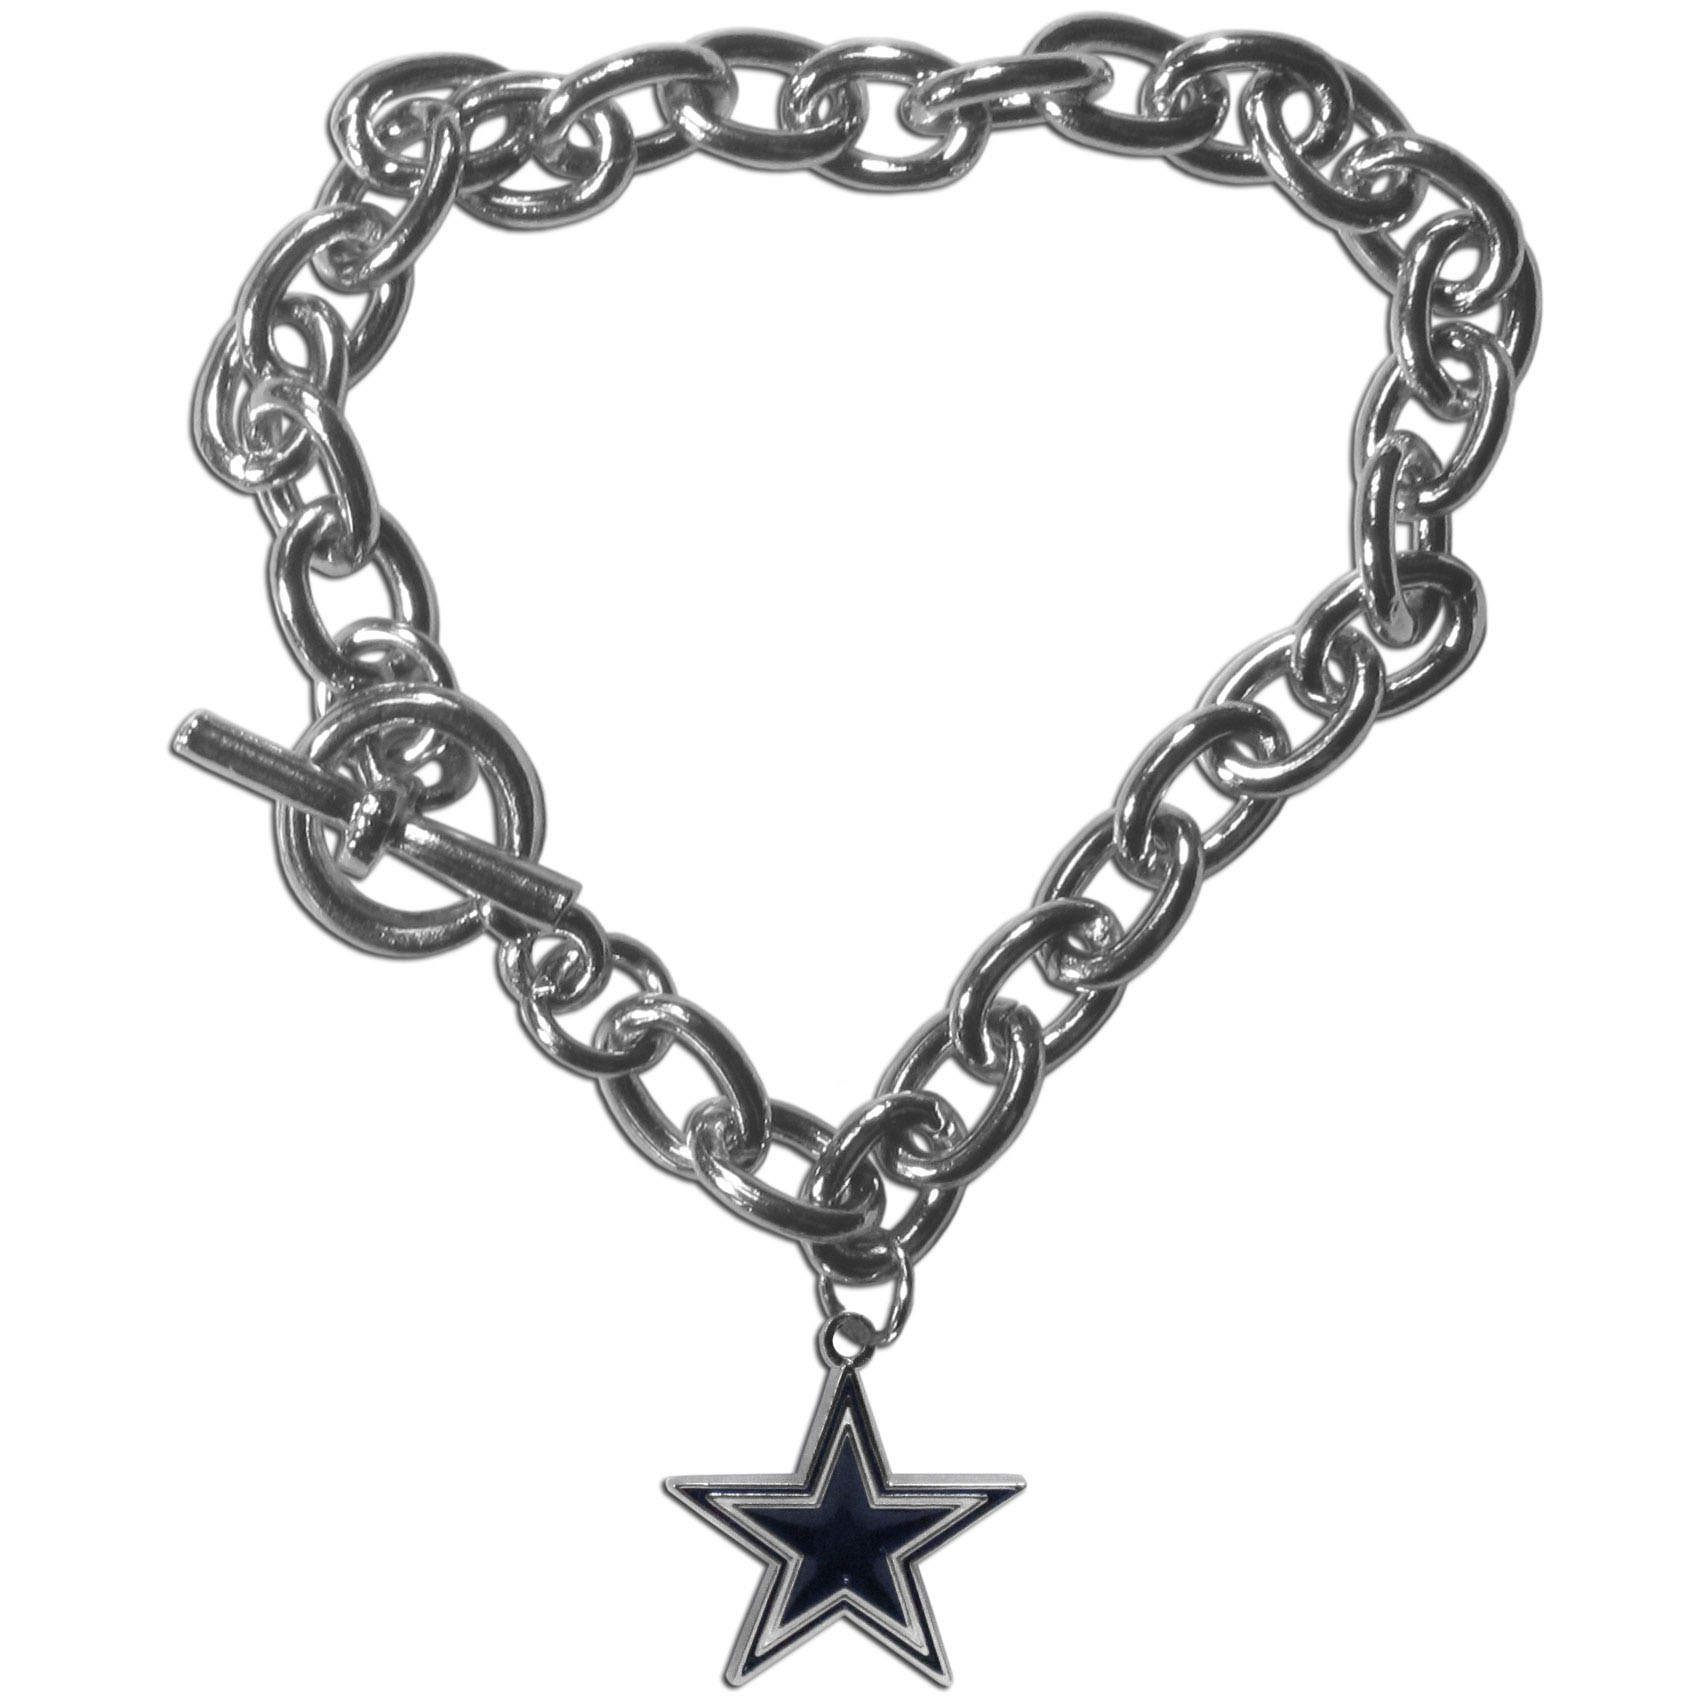 Dallas Cowboys Charm Chain Bracelet - Our classic single charm bracelet is a great way to show off your team pride! The 7.5 inch large link chain features a high polish Dallas Cowboys charm and features a toggle clasp which makes it super easy to take on and off.